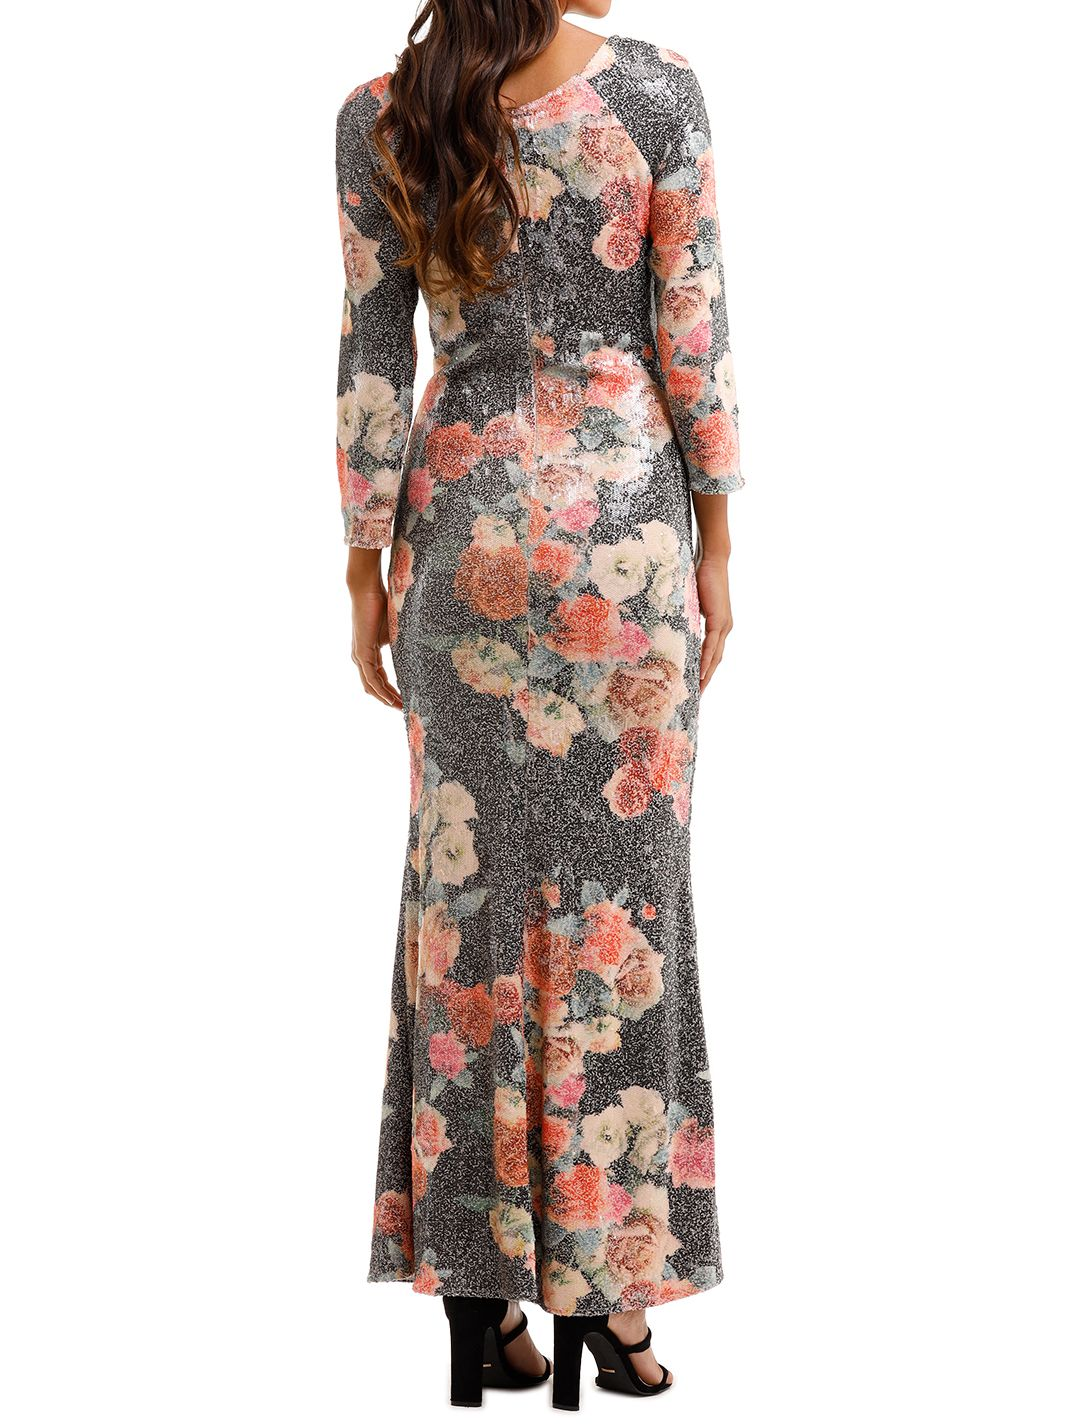 Moss and Spy	Matisse Gown Floral Multi